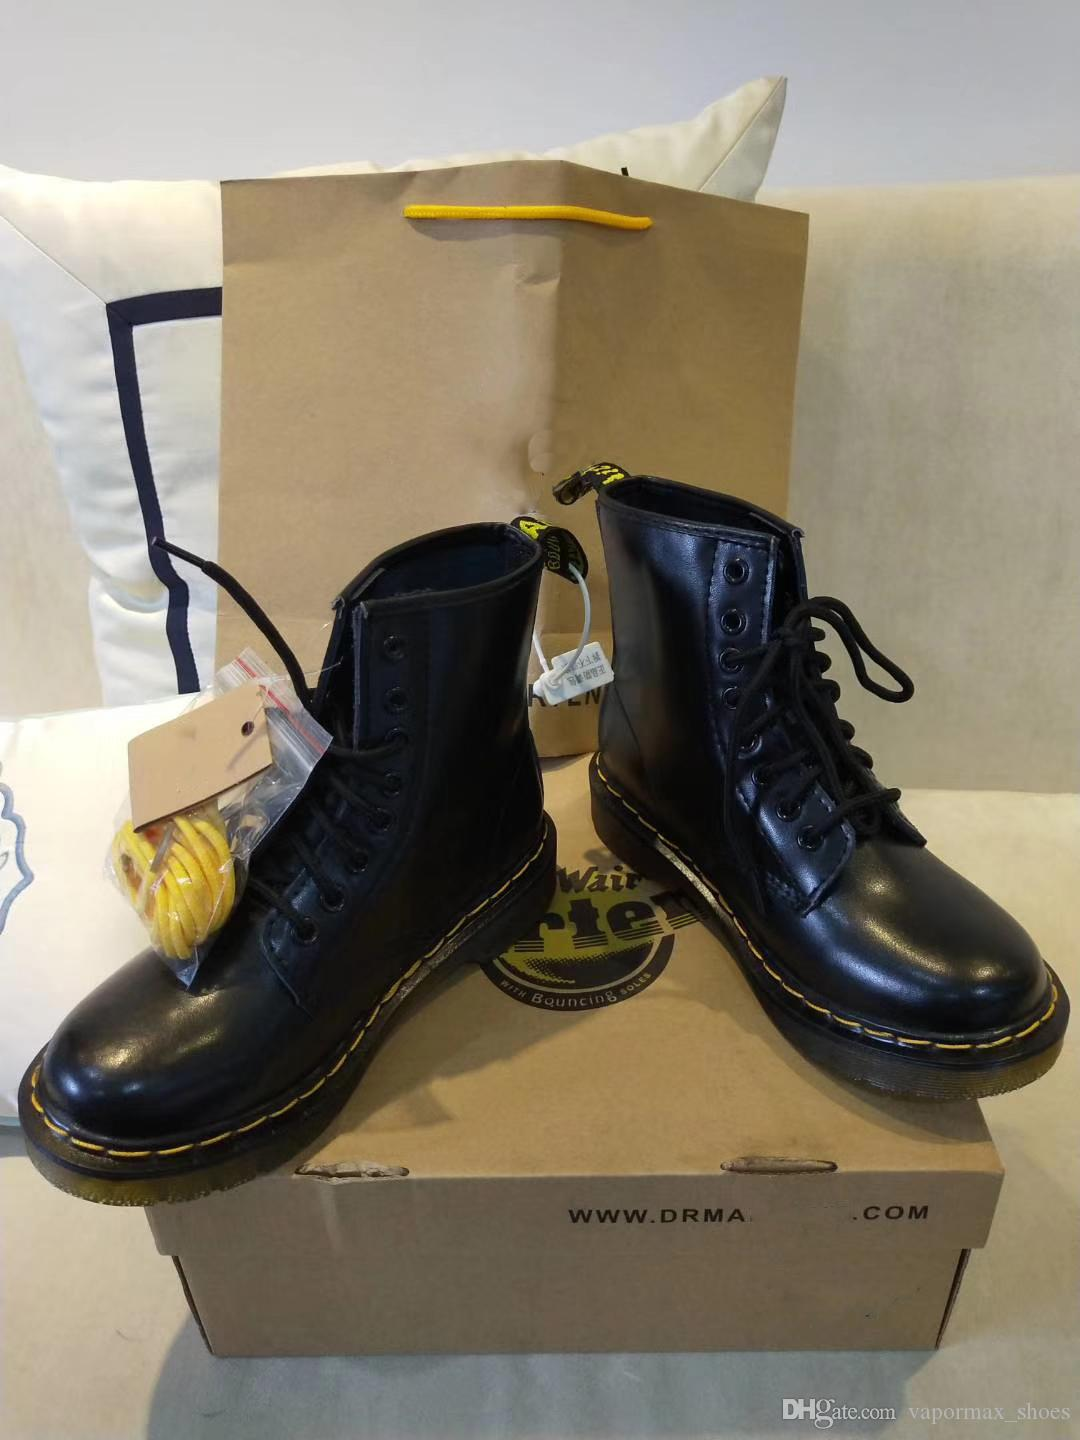 16dc30c76 2019 Designer Martin Genuine Leather Shoes Boots High Top Dr 1460  Motorcycle Style En Women Slim Fit Shoes Lover Snow Boots From  Vapormax shoes